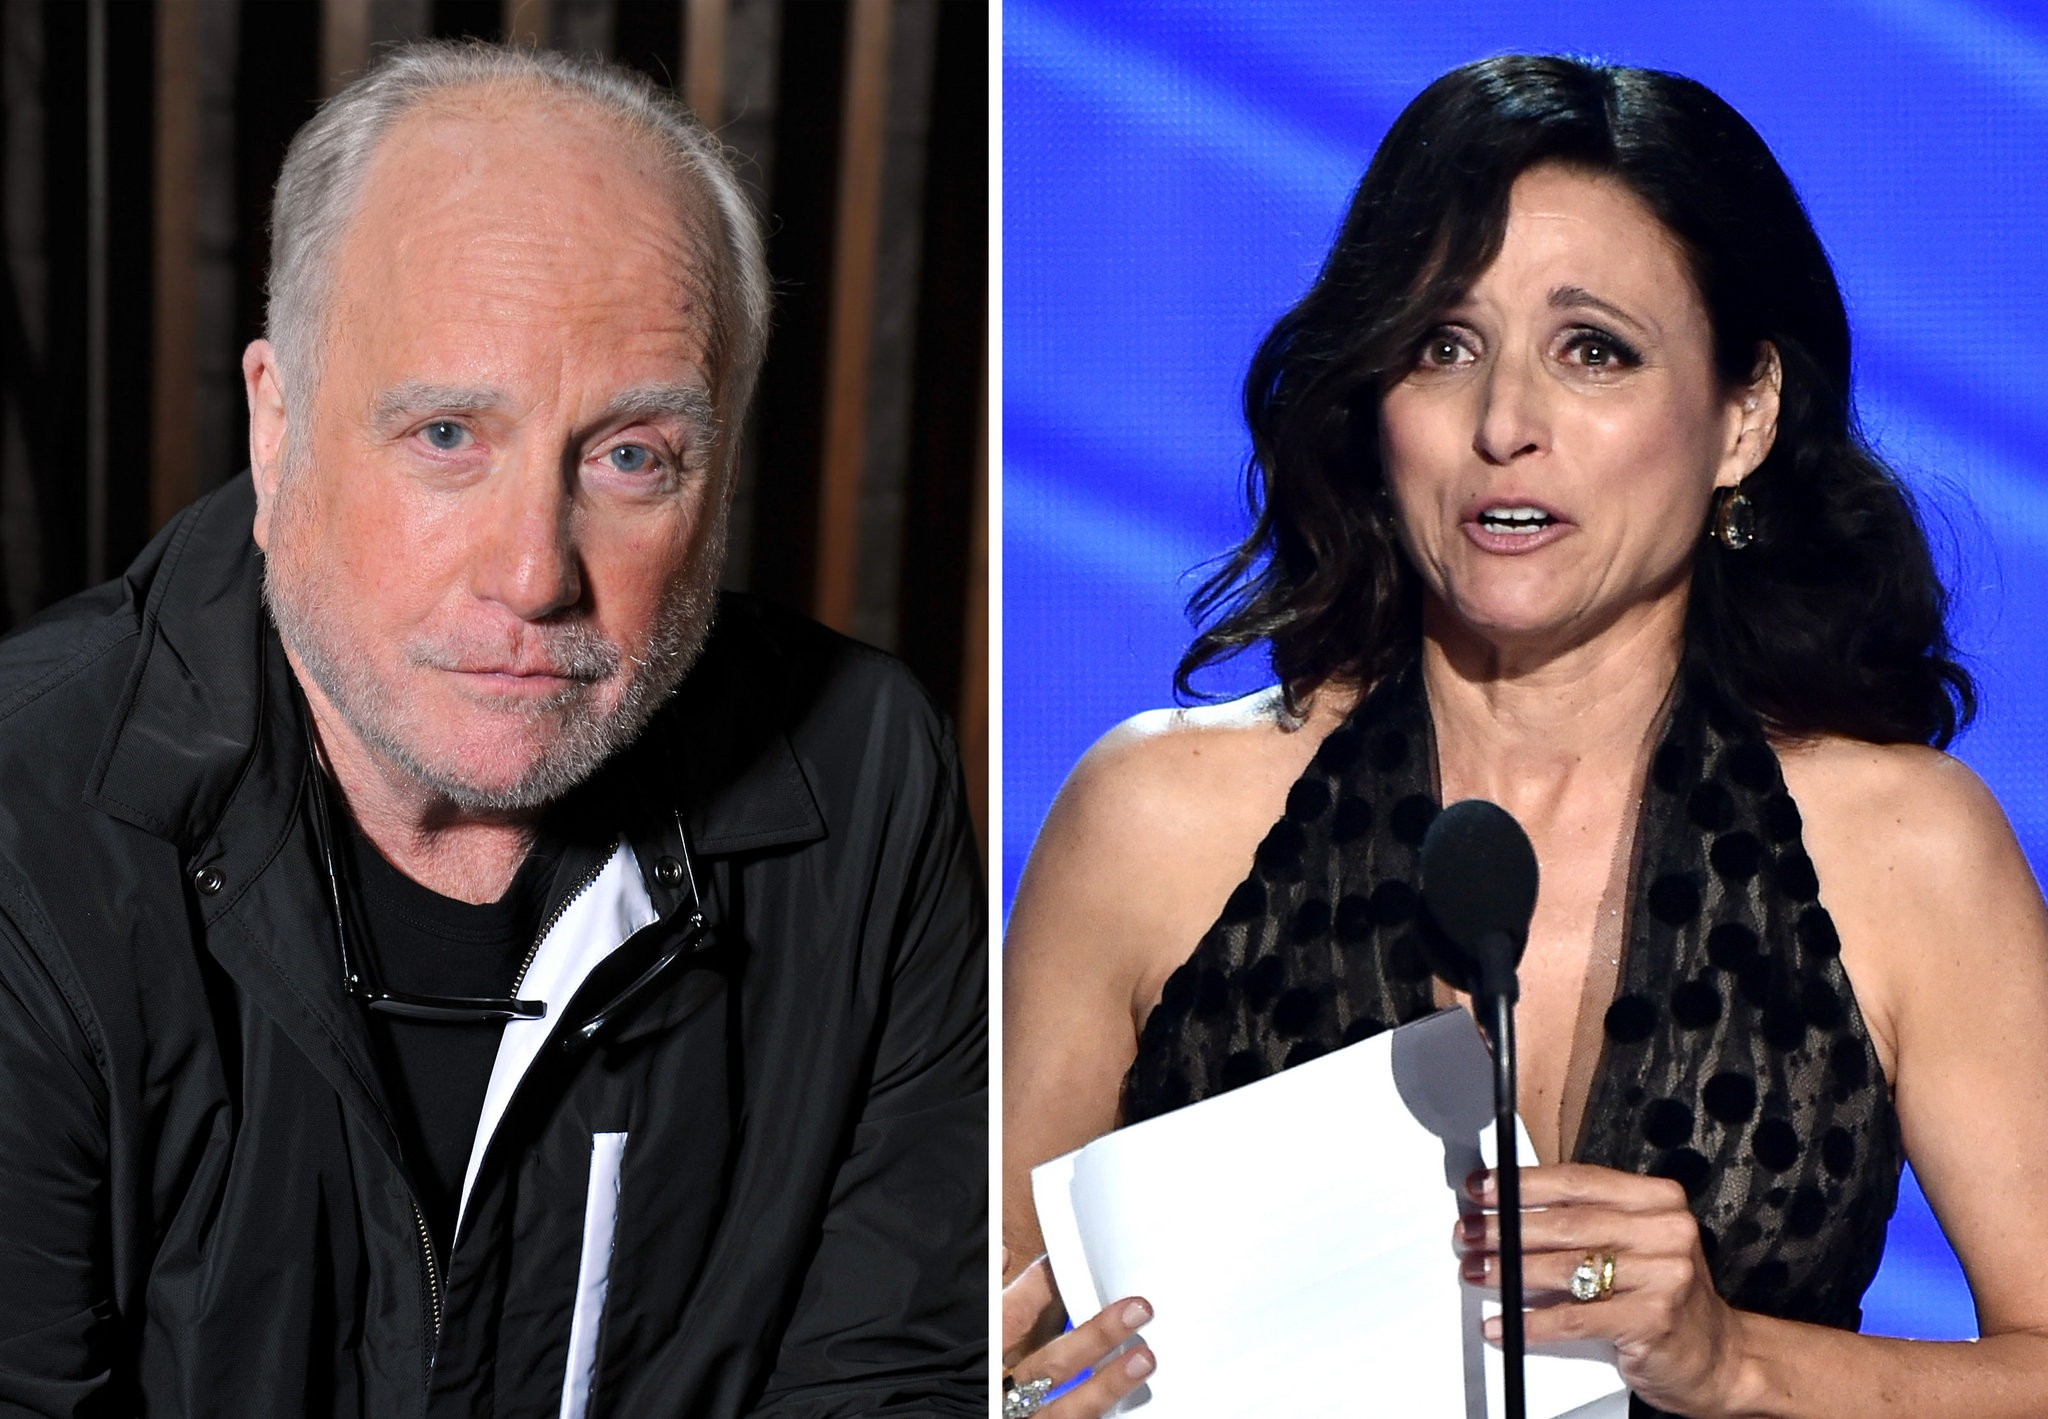 Julia Louis Dreyfus Ever Been Nude dreyfuss mistaken for jld's dad; actor quits scientology